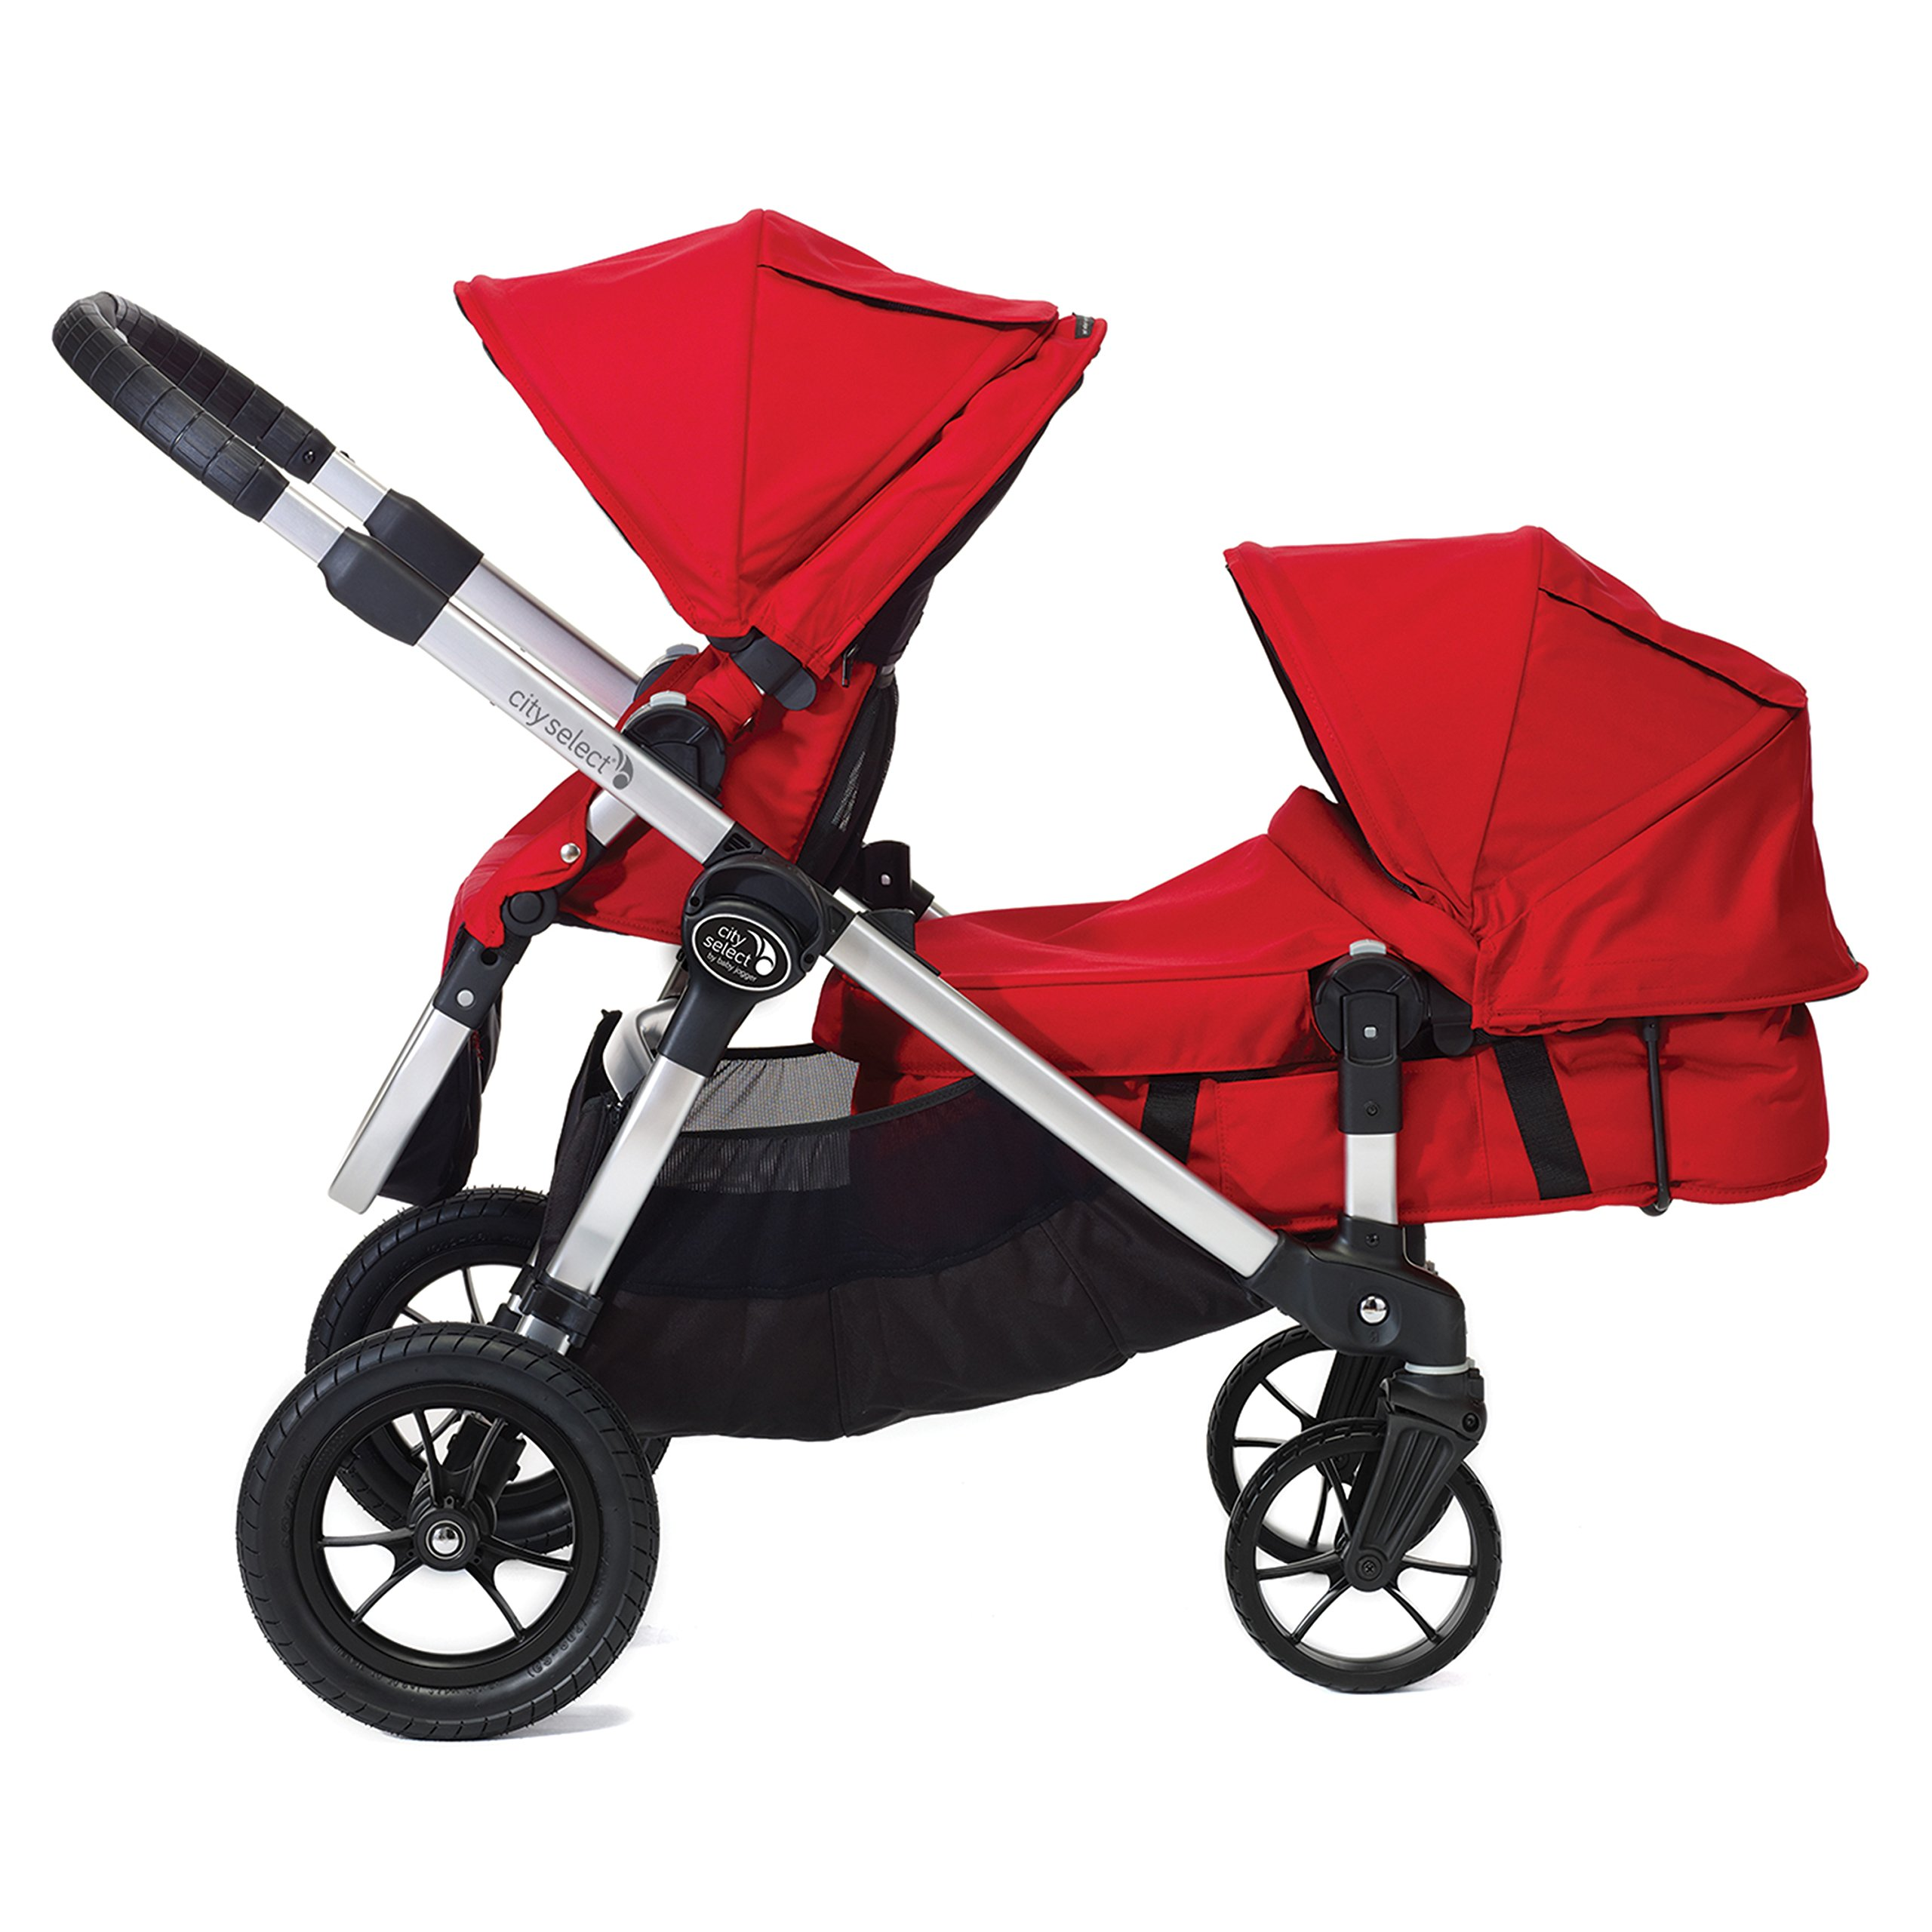 Baby Jogger City Select Second Seat Adaptors Stroller Grey by Baby Jogger (Image #4)